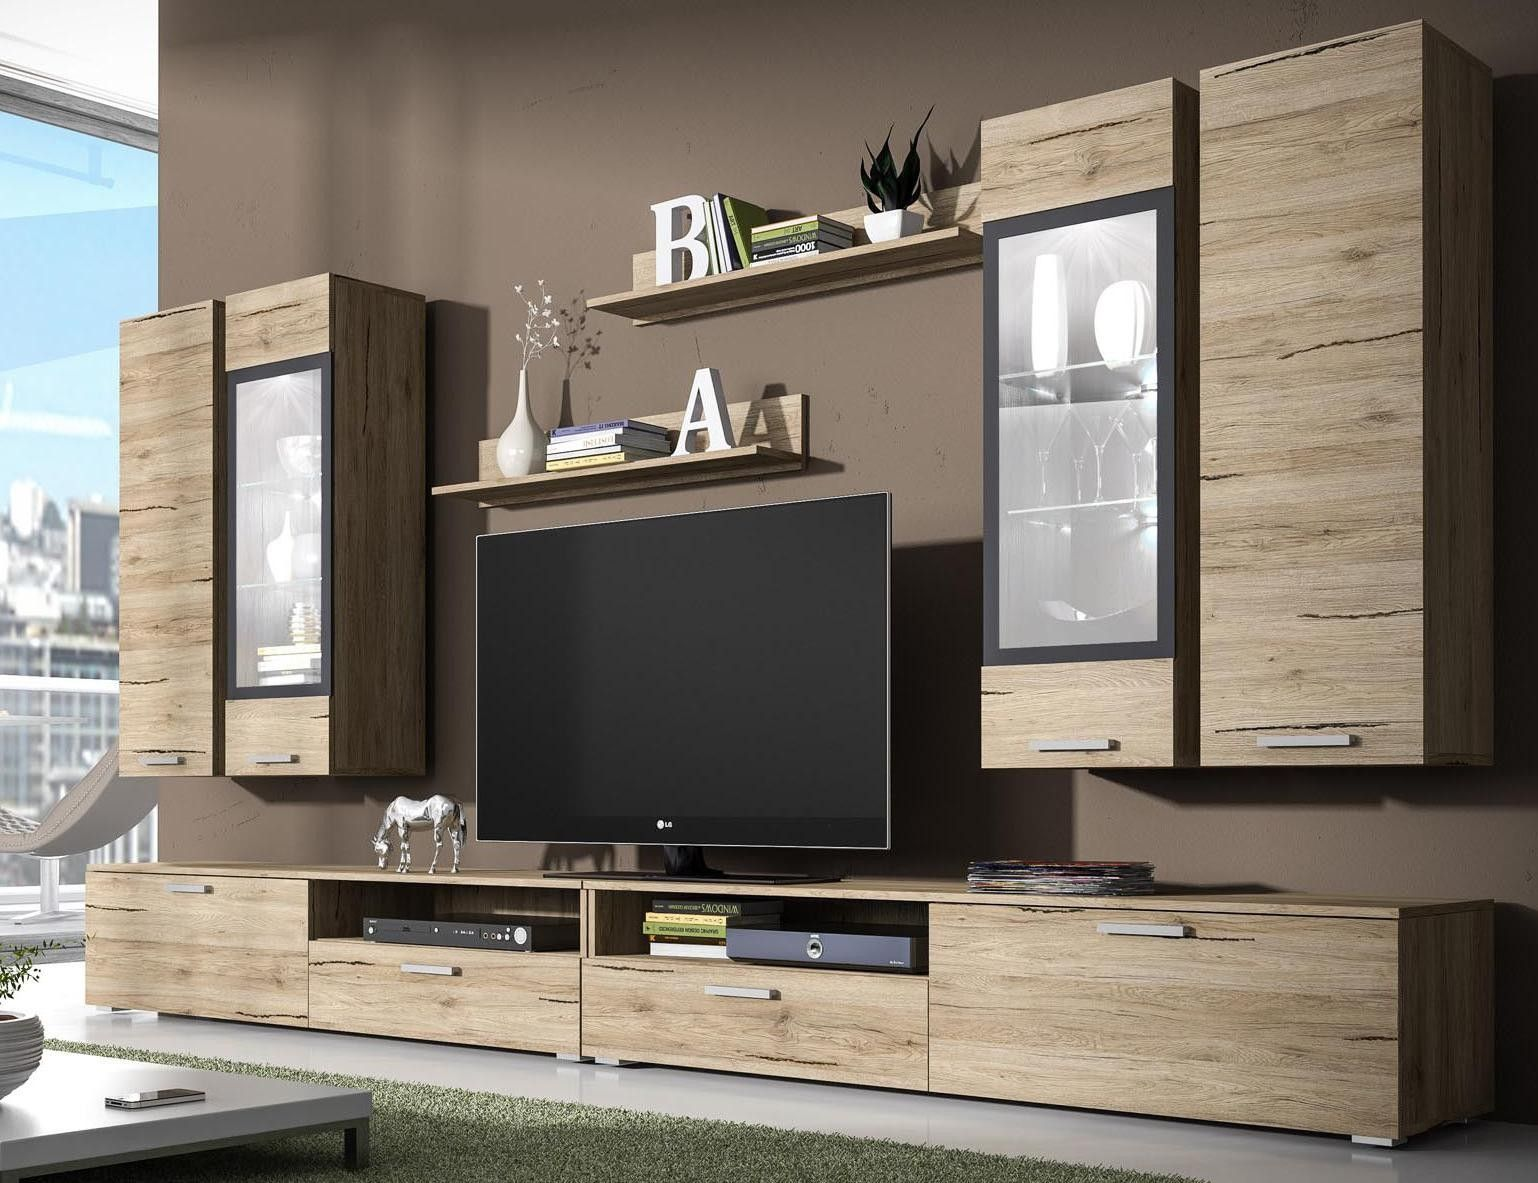 Ensemble Mural Tv Design Bois - Ensemble Meuble Tv Mural Nova Meuble Tv Design Pas Cher [mjhdah]https://i.pinimg.com/originals/45/f3/d0/45f3d06ba2b21ea6f4ef927765e25d68.jpg